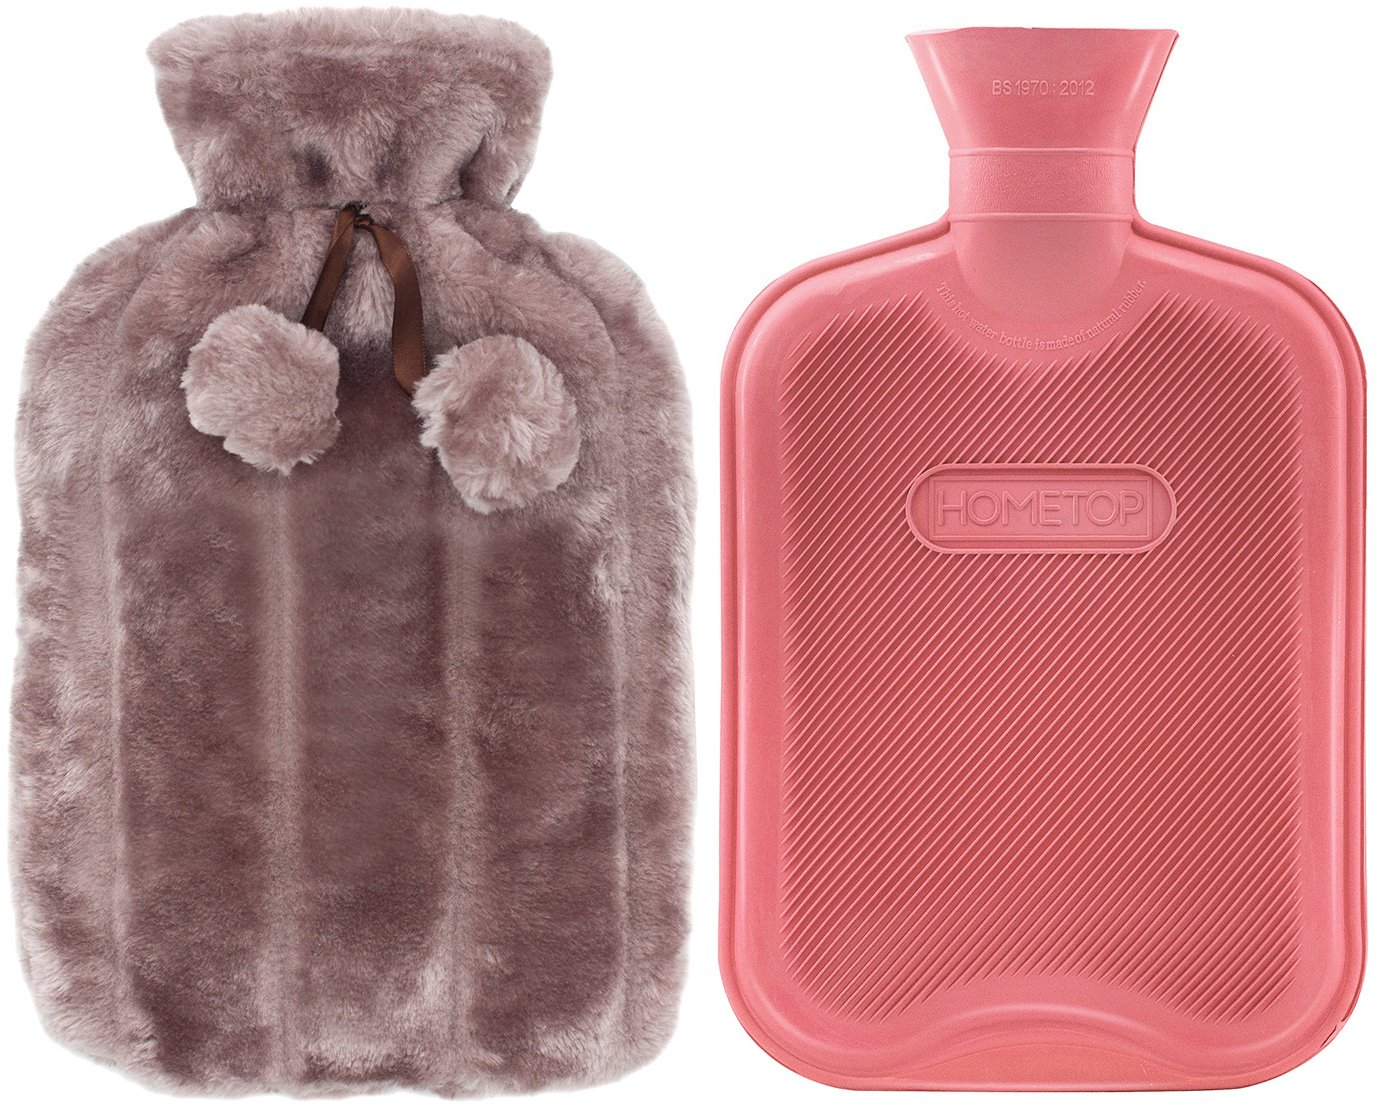 Premium Classic Rubber Hot Water Bottle and Luxurious Faux Fur Plush Fleece Cover w/Pom Pom Decor (Nude Pink) by HomeTop